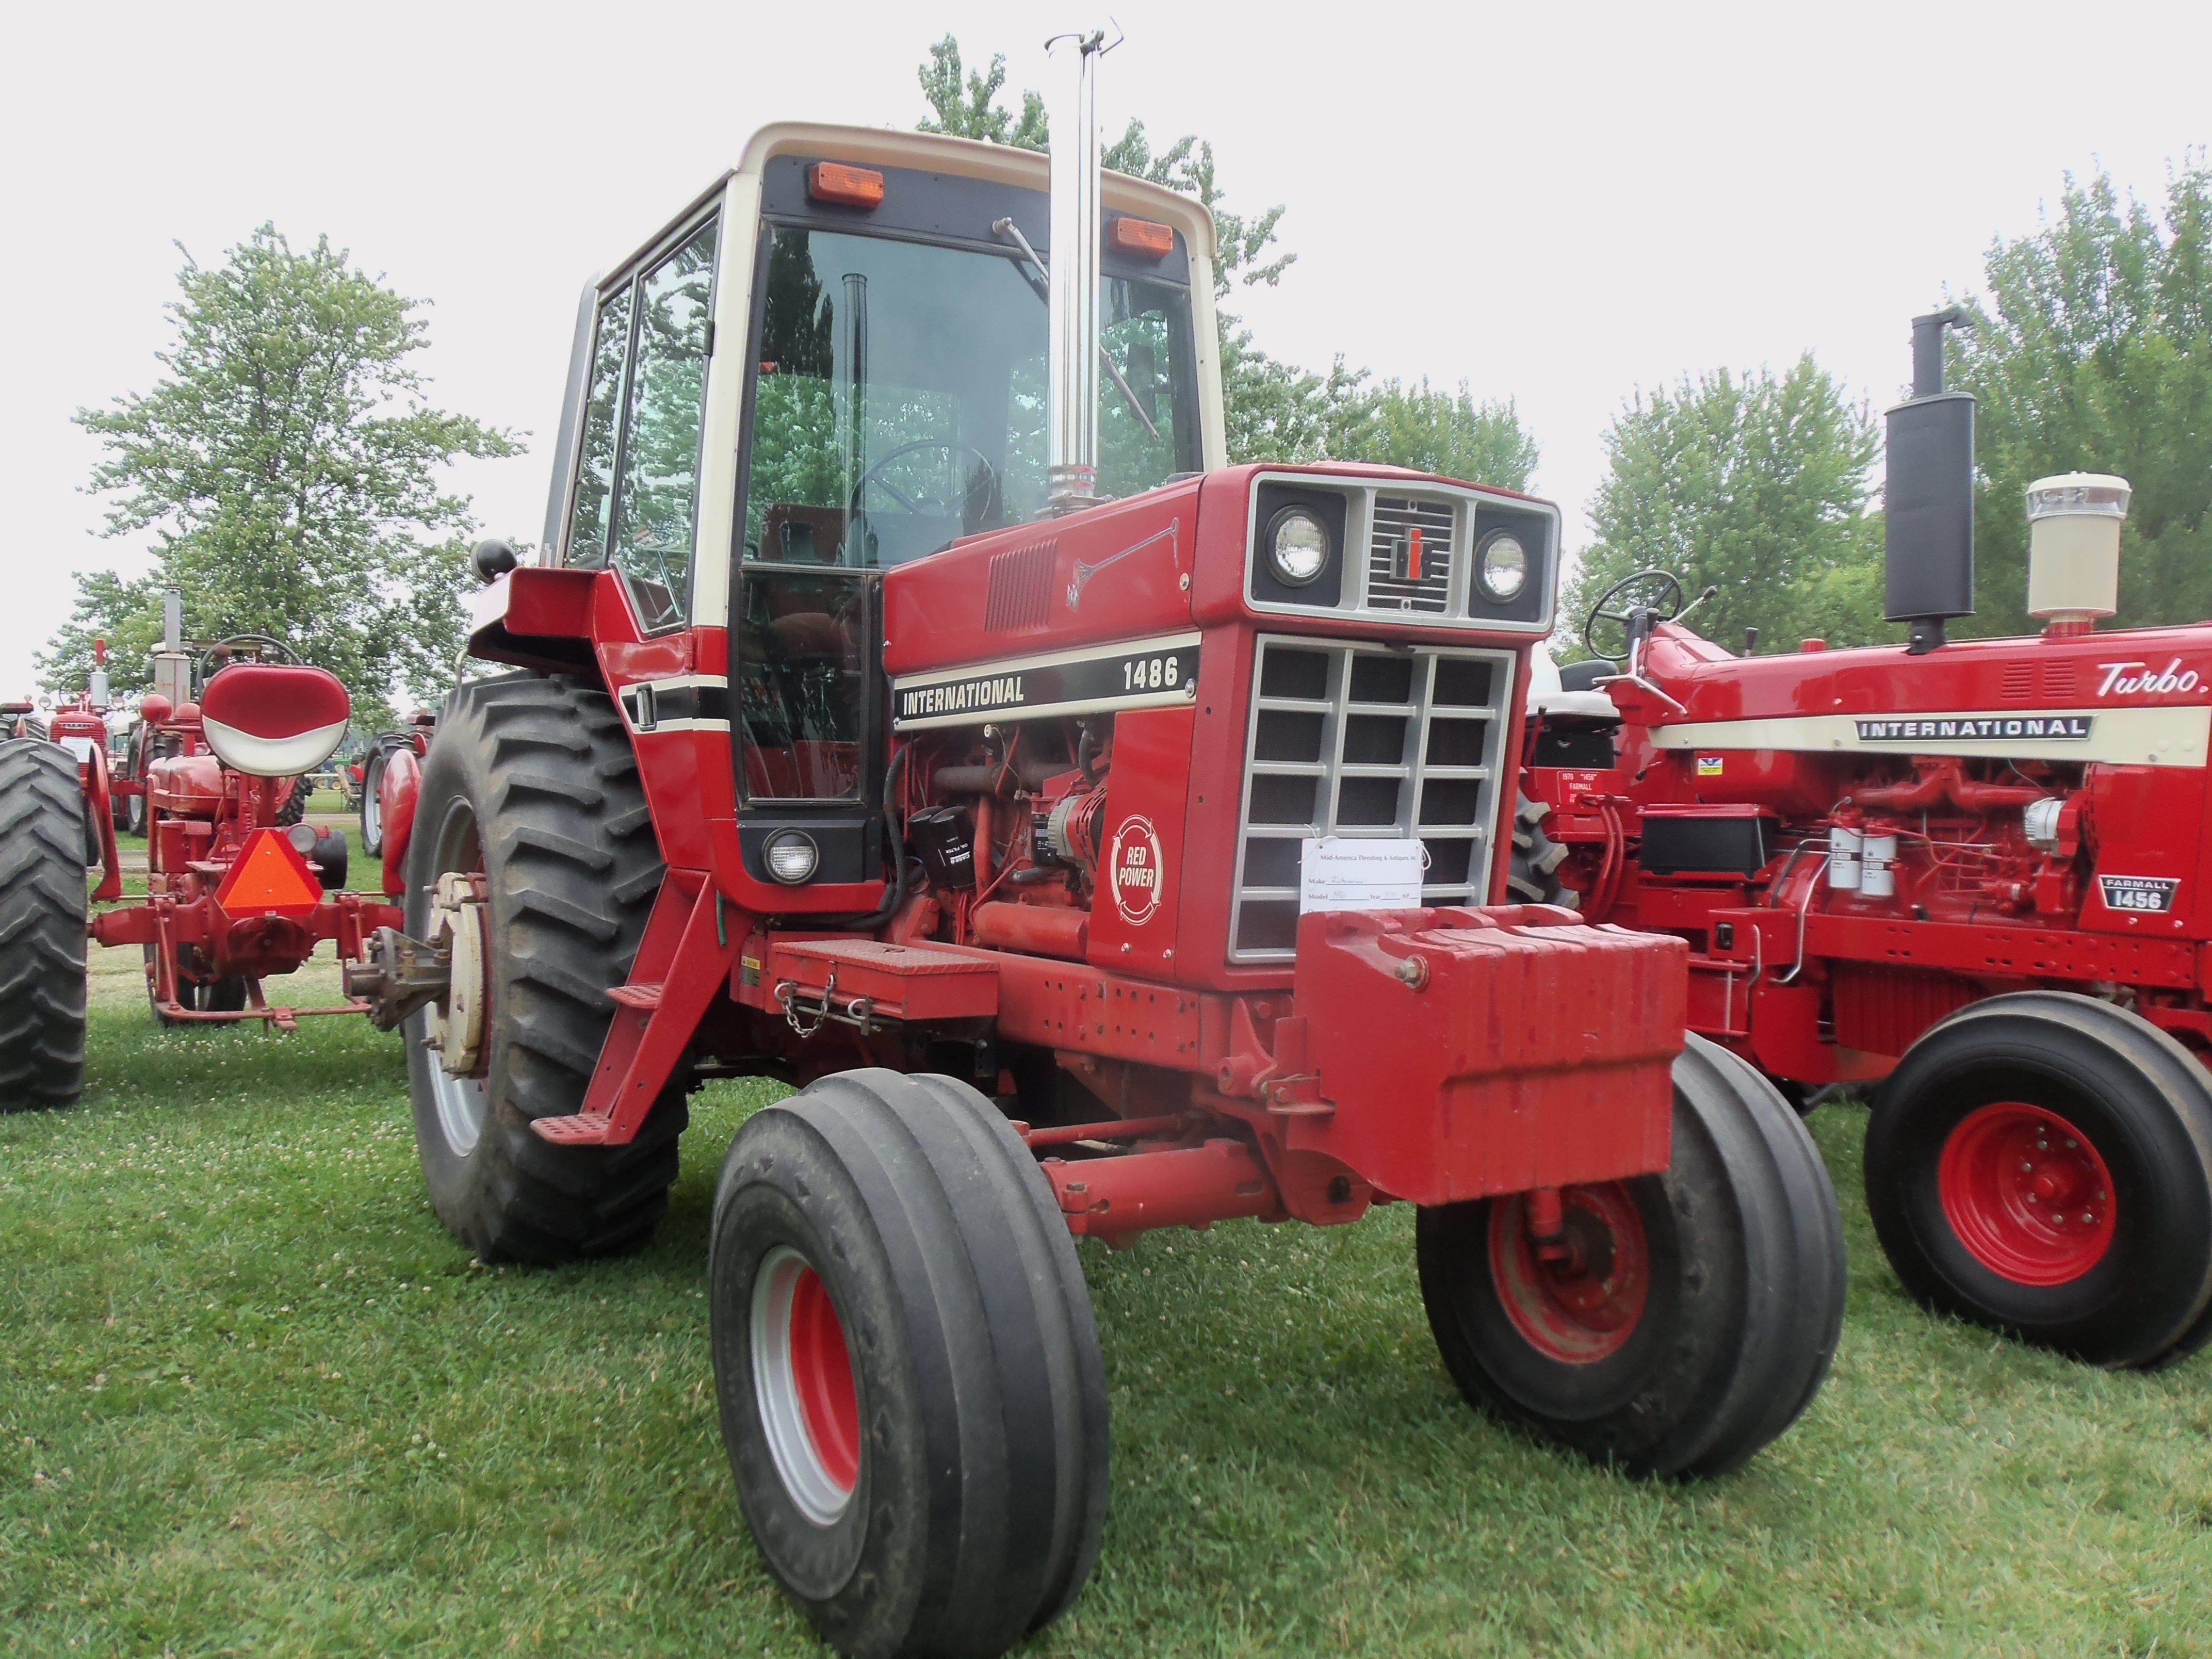 145hp International 1486 RED POWER cab tractor